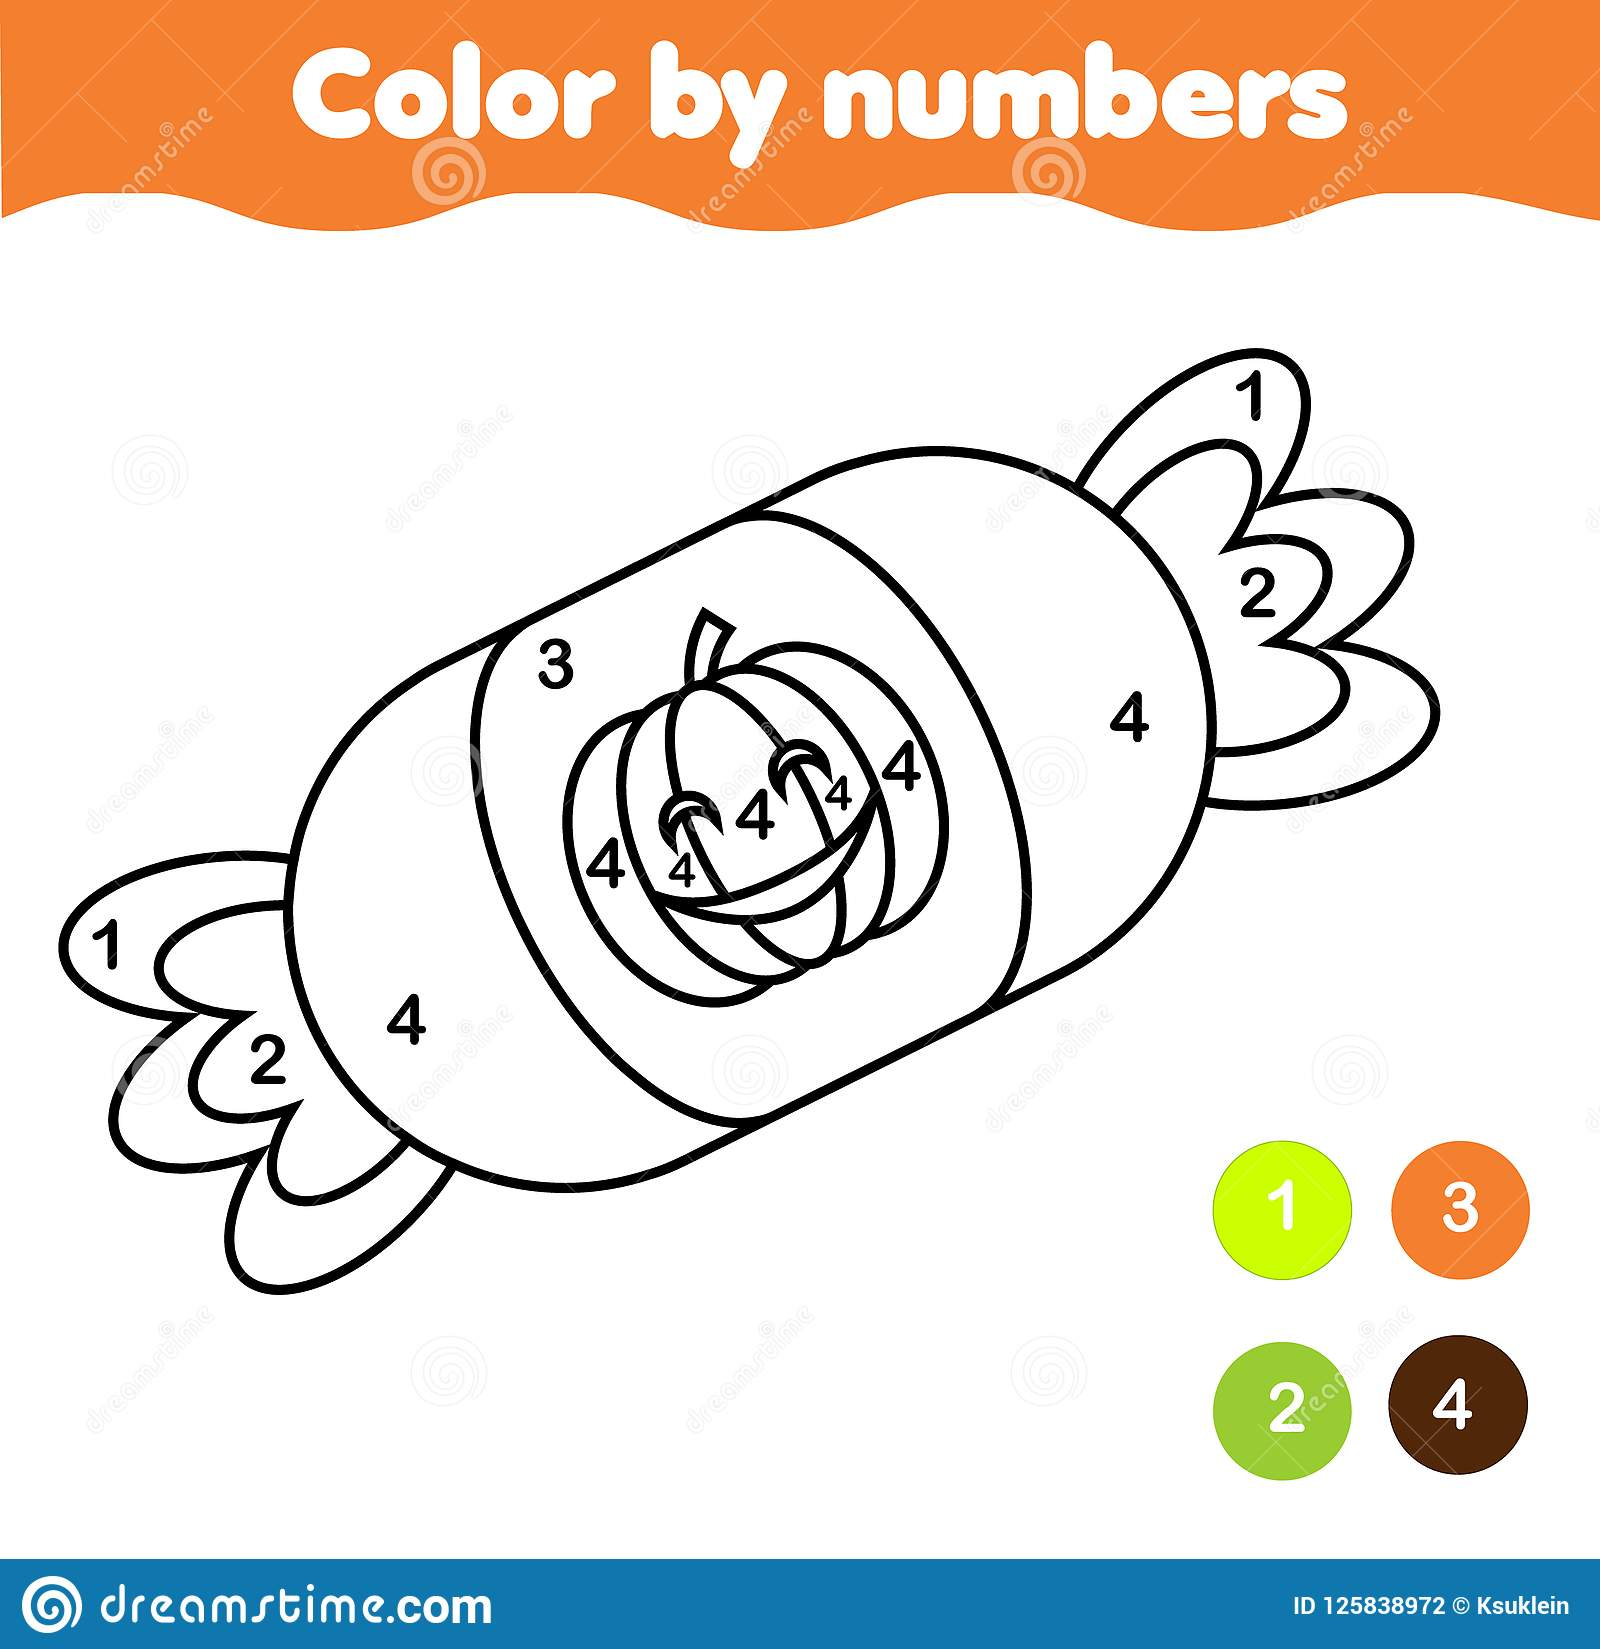 Coloring page with halloween candy. Color by numbers printable activity